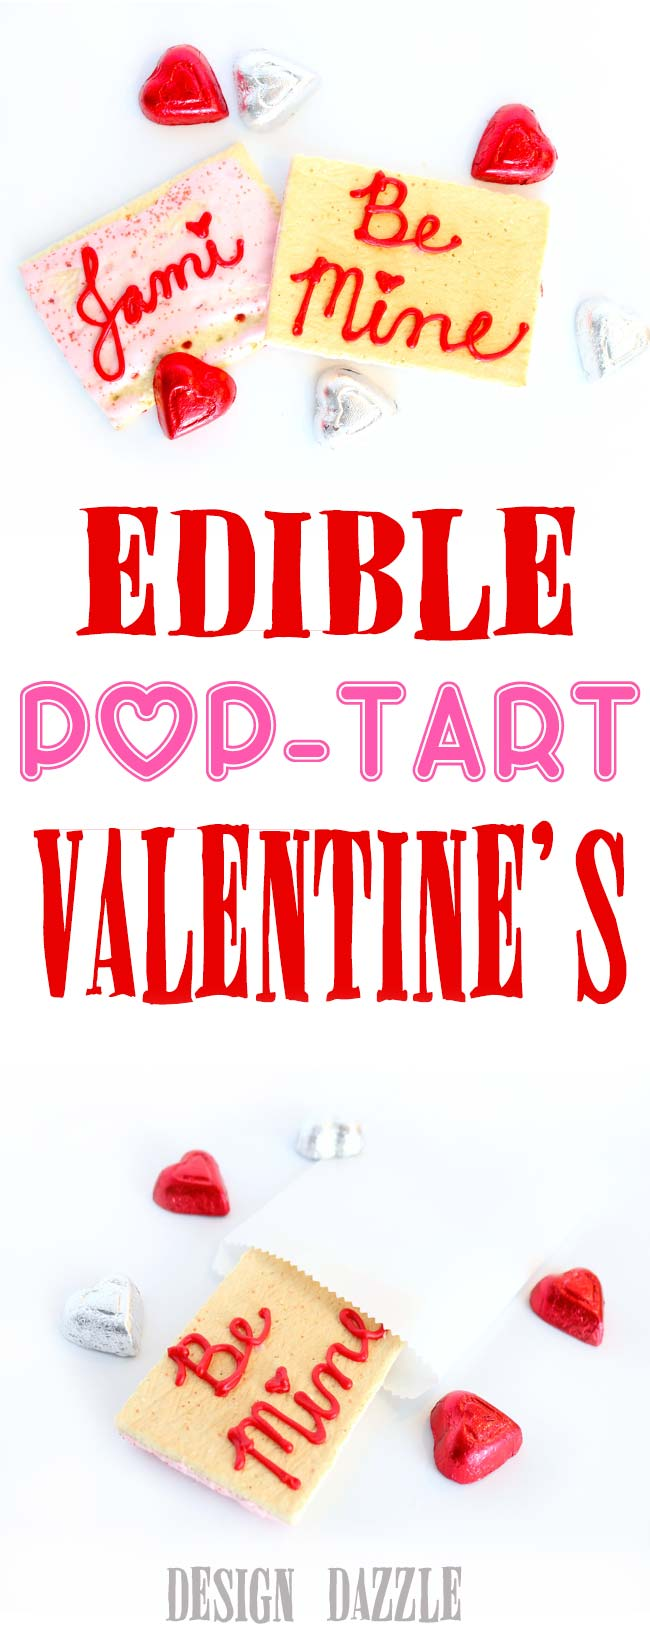 Use Pop-Tarts to create edible no-bake Valentine's. Easy and fun to make for your kids or with your kids! This frosting hardens so you can place the Valentine inside a bag. Design Dazzle